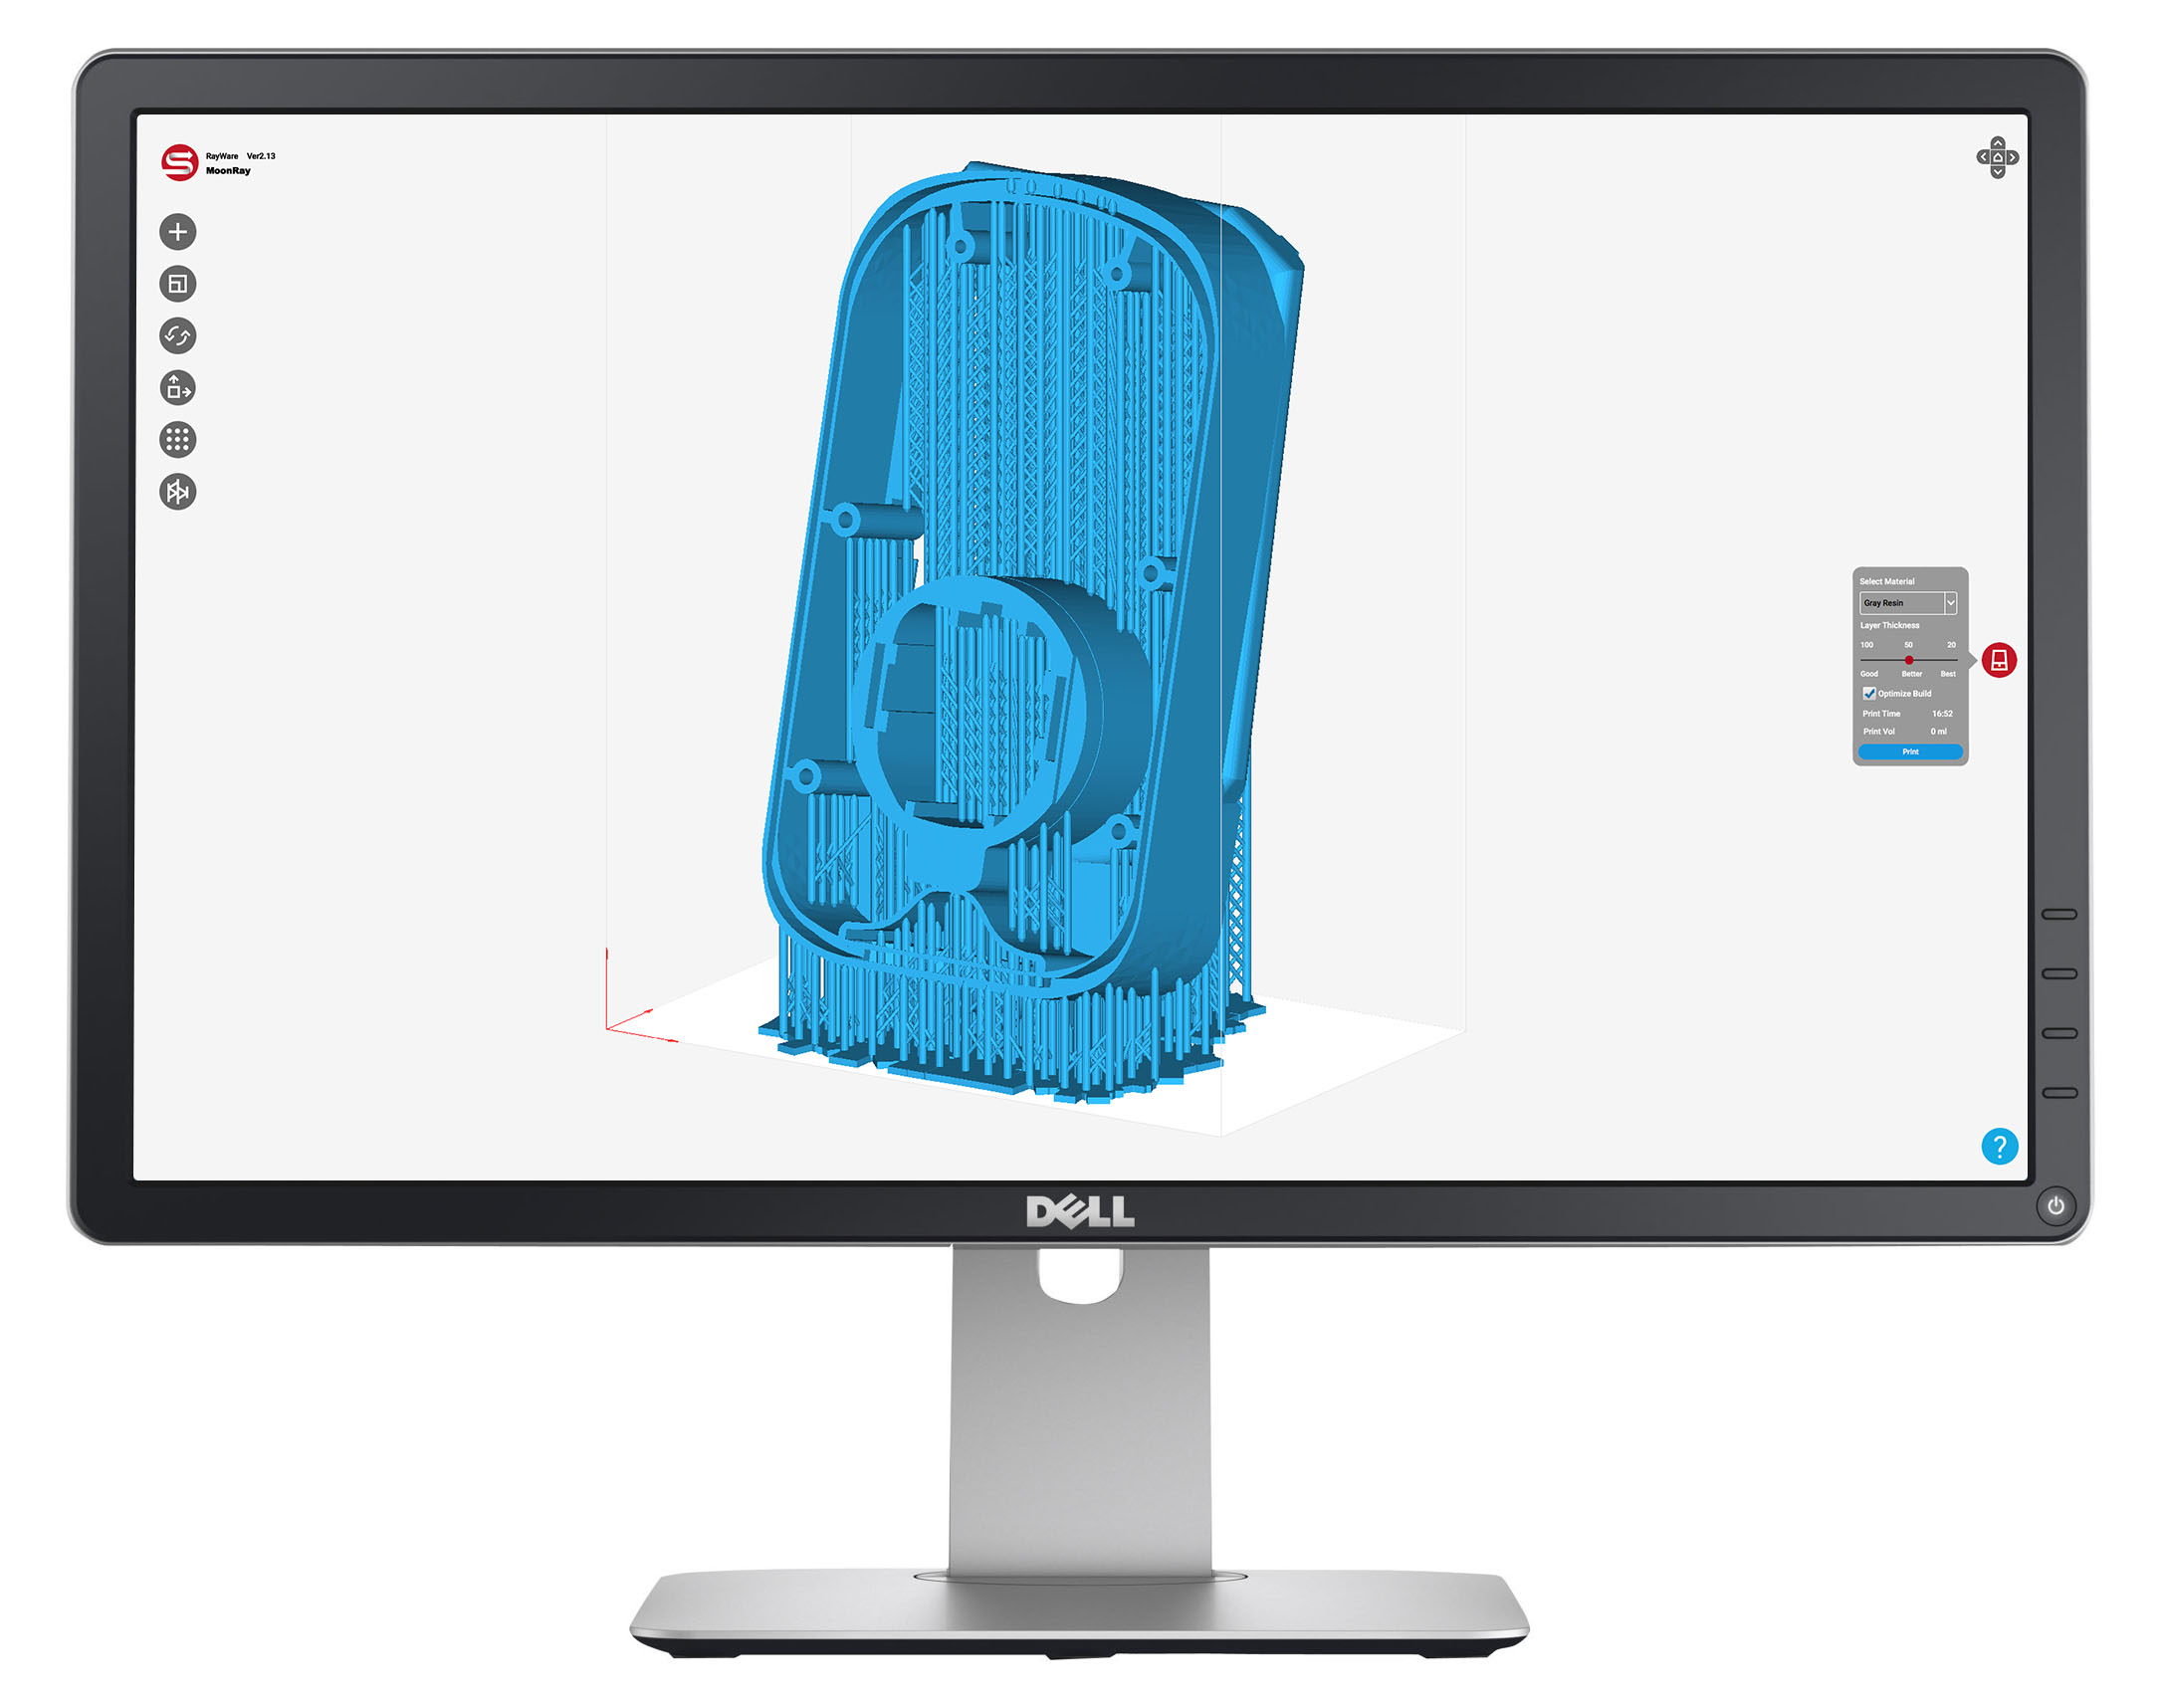 MoonRay_engineering_3dprinting_software